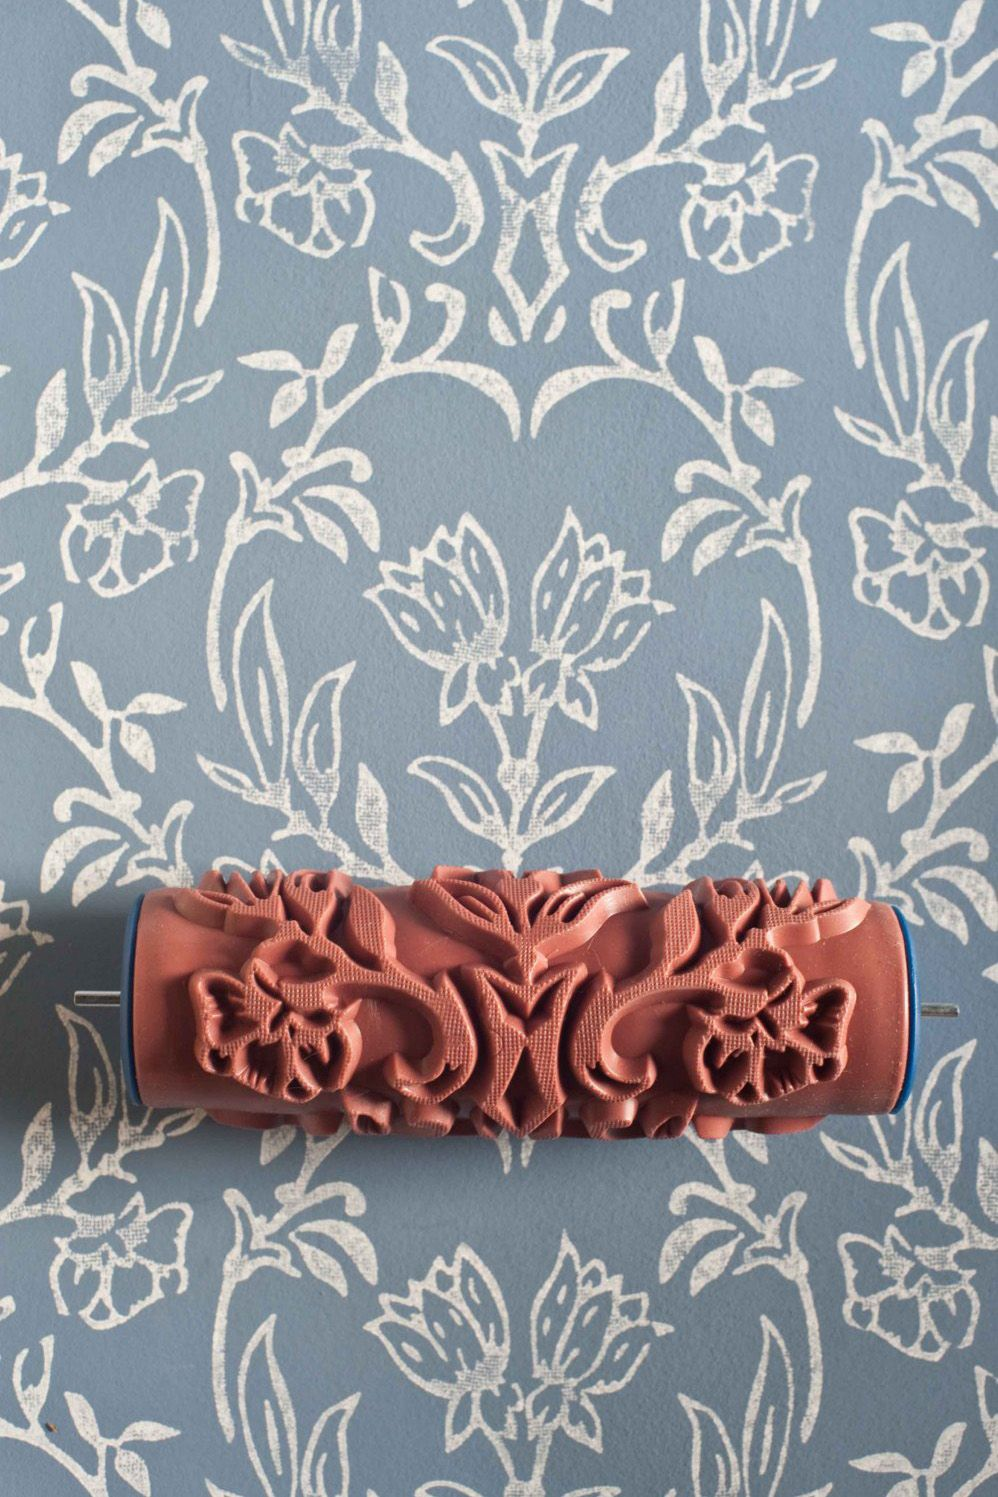 Tapet Patterned Paint Roller From The Painted House Patterned